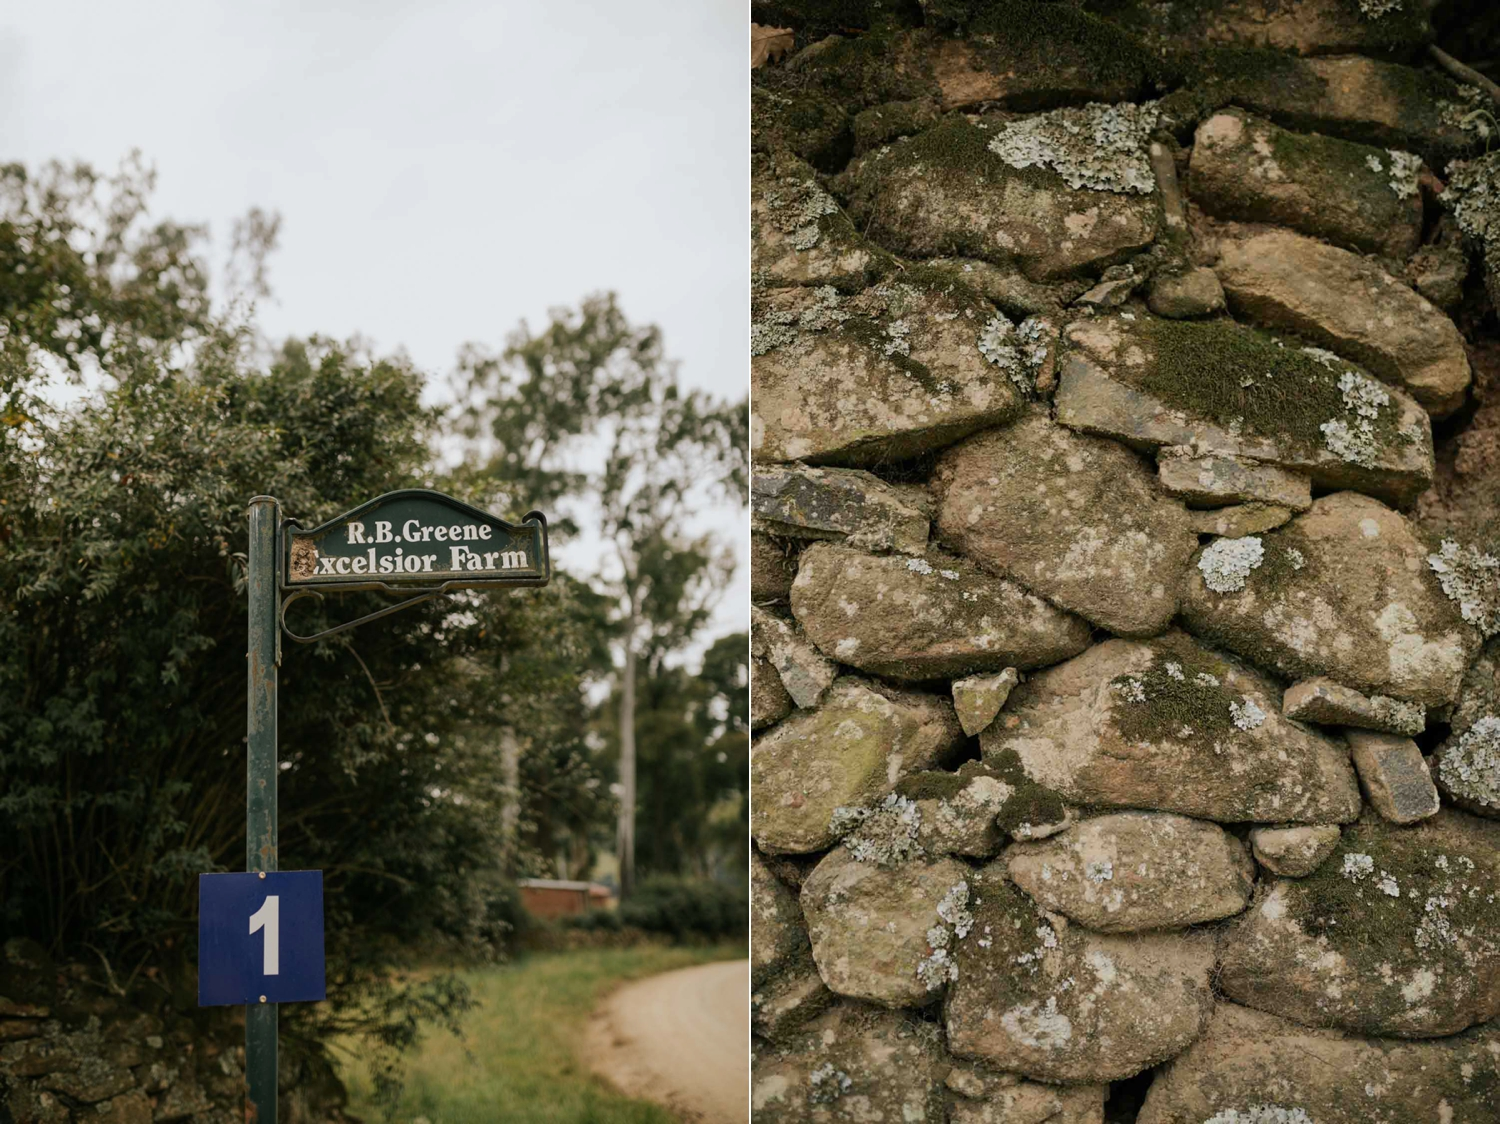 Farm sign and stone wall